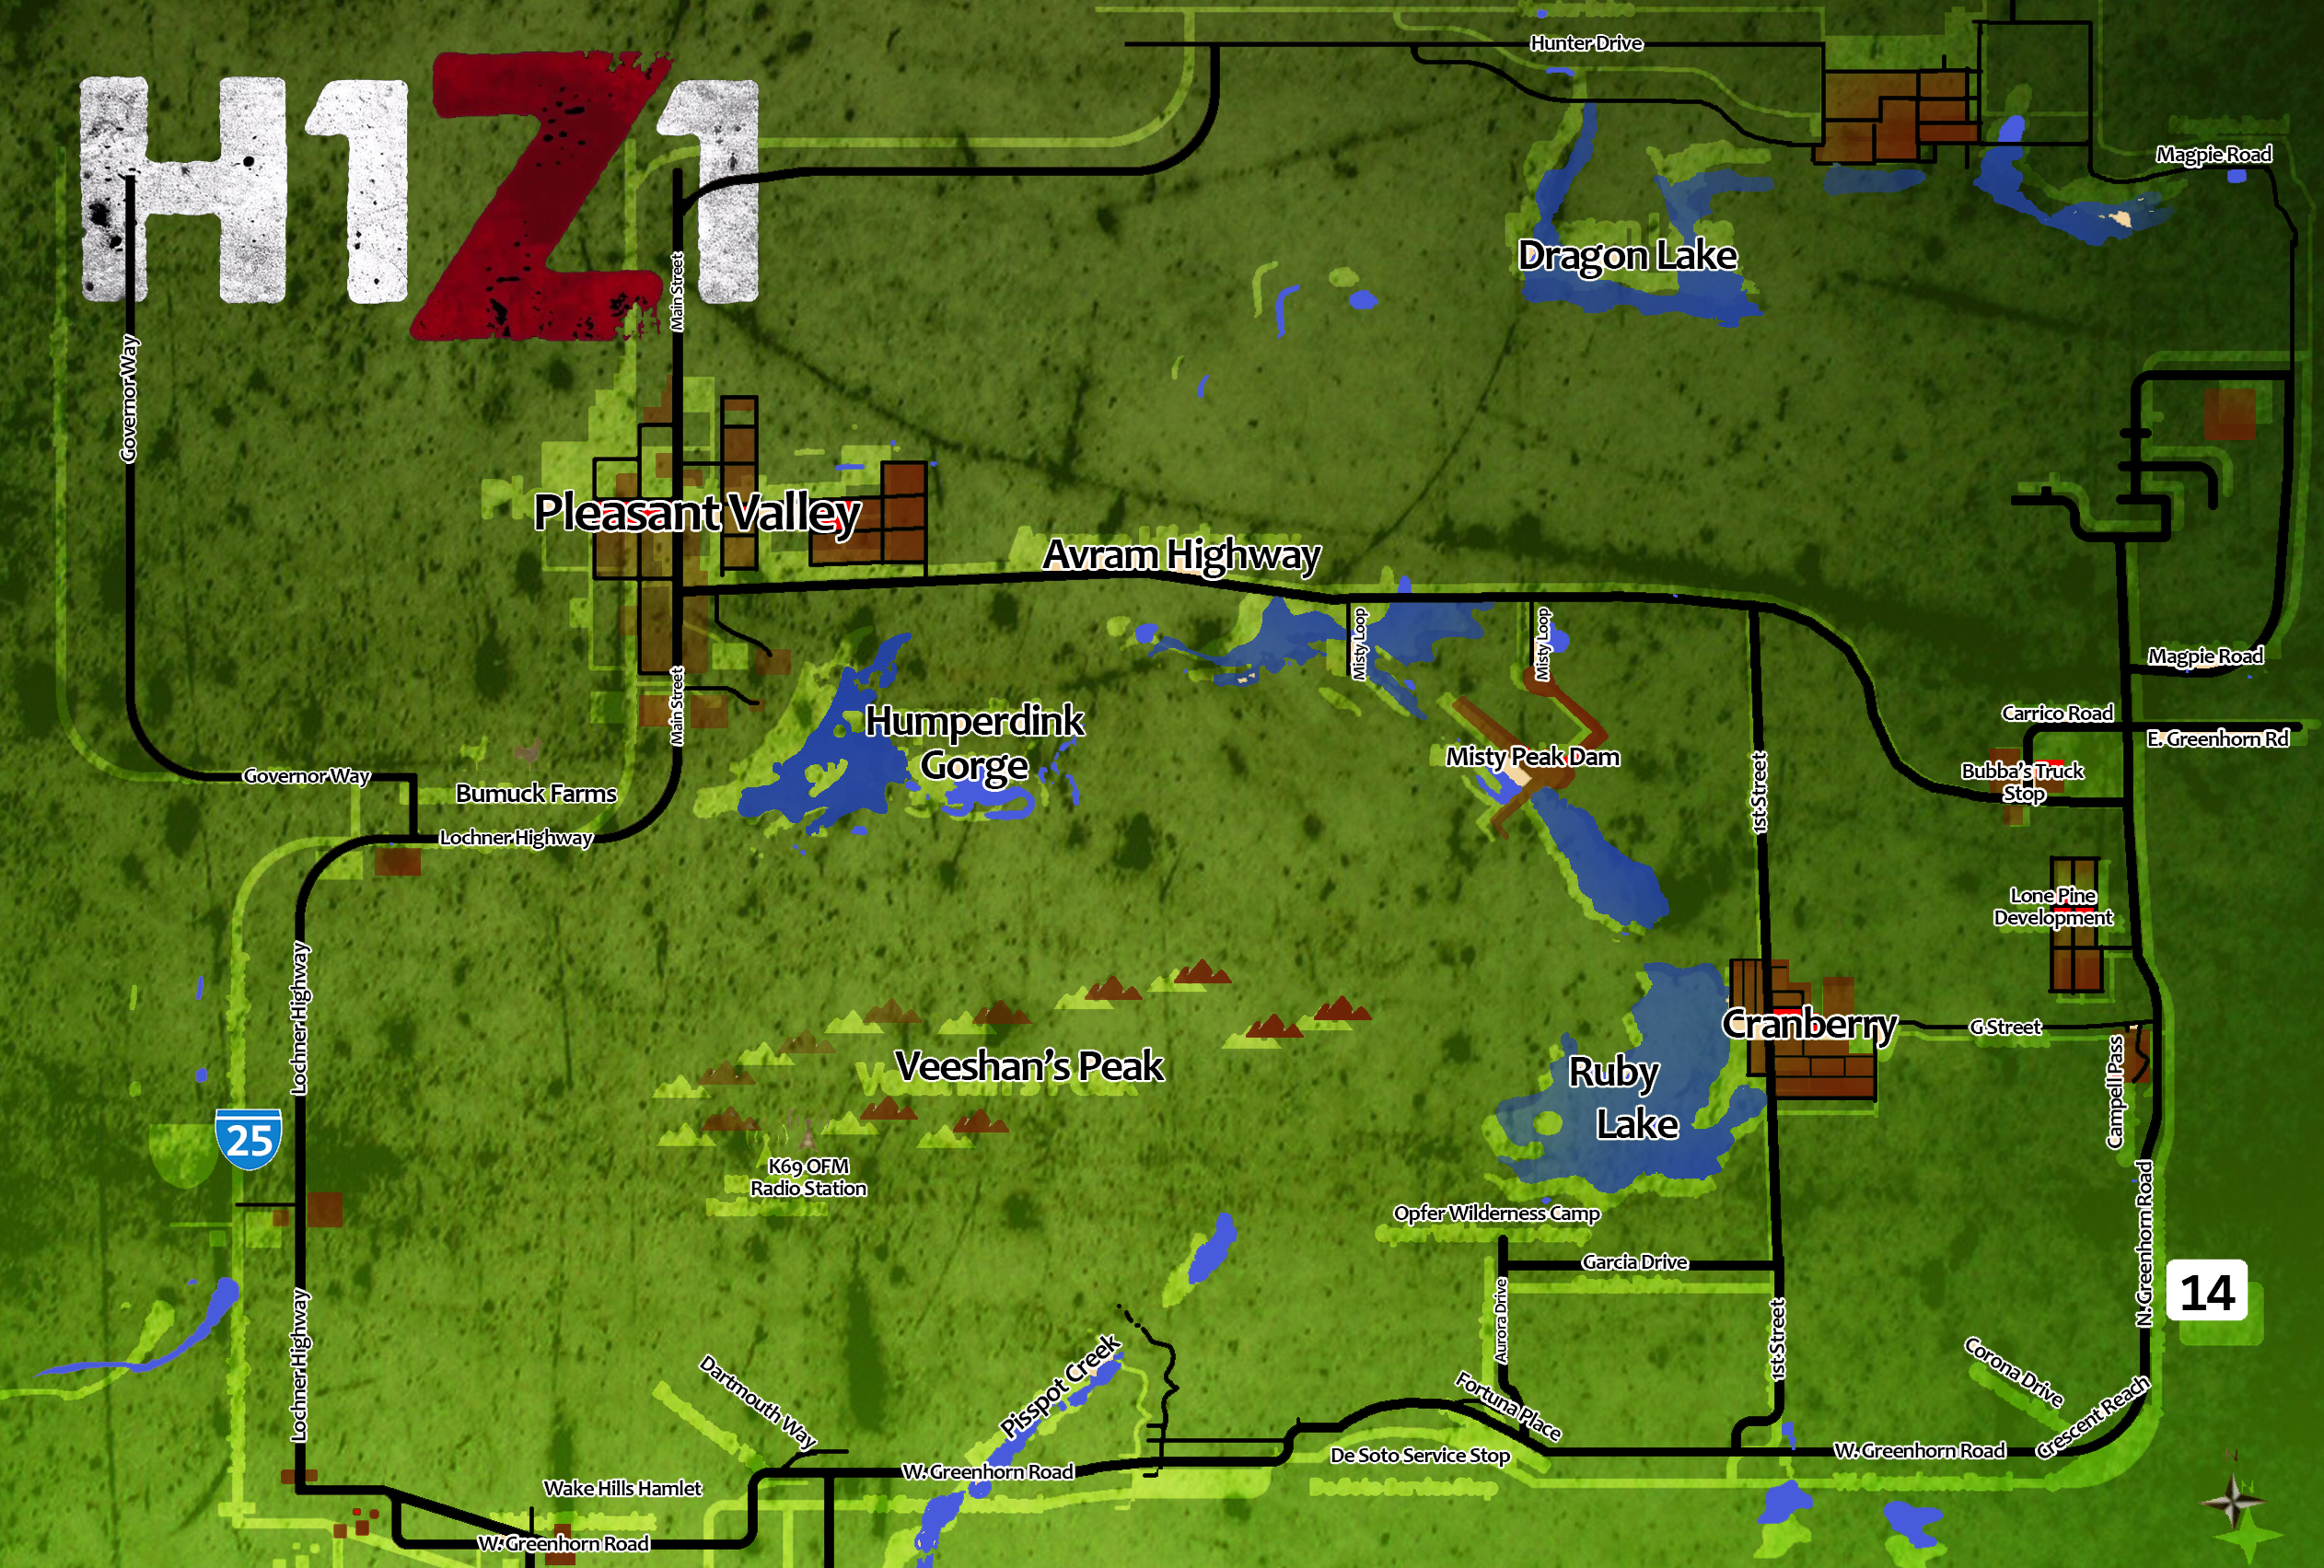 H1Z1 map - Off Topic - Star Citizen Base